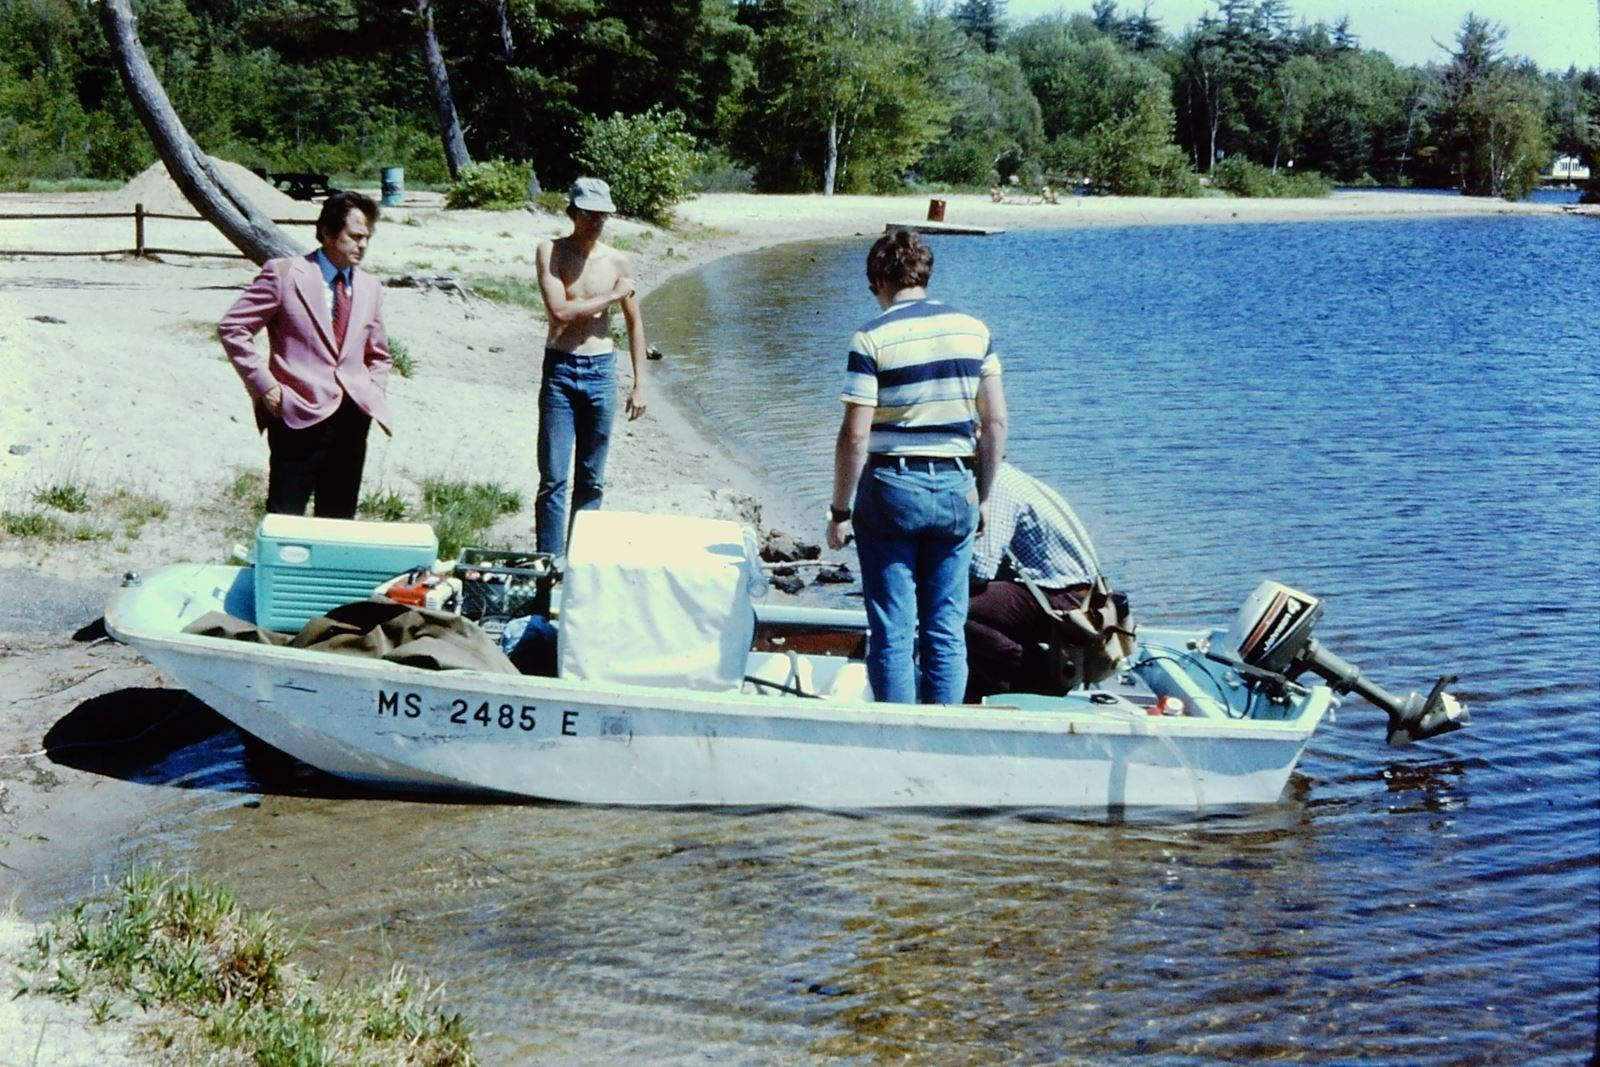 A photo of a small white boat at the edge of a lake, loaded with equipment,  with three men standing by it